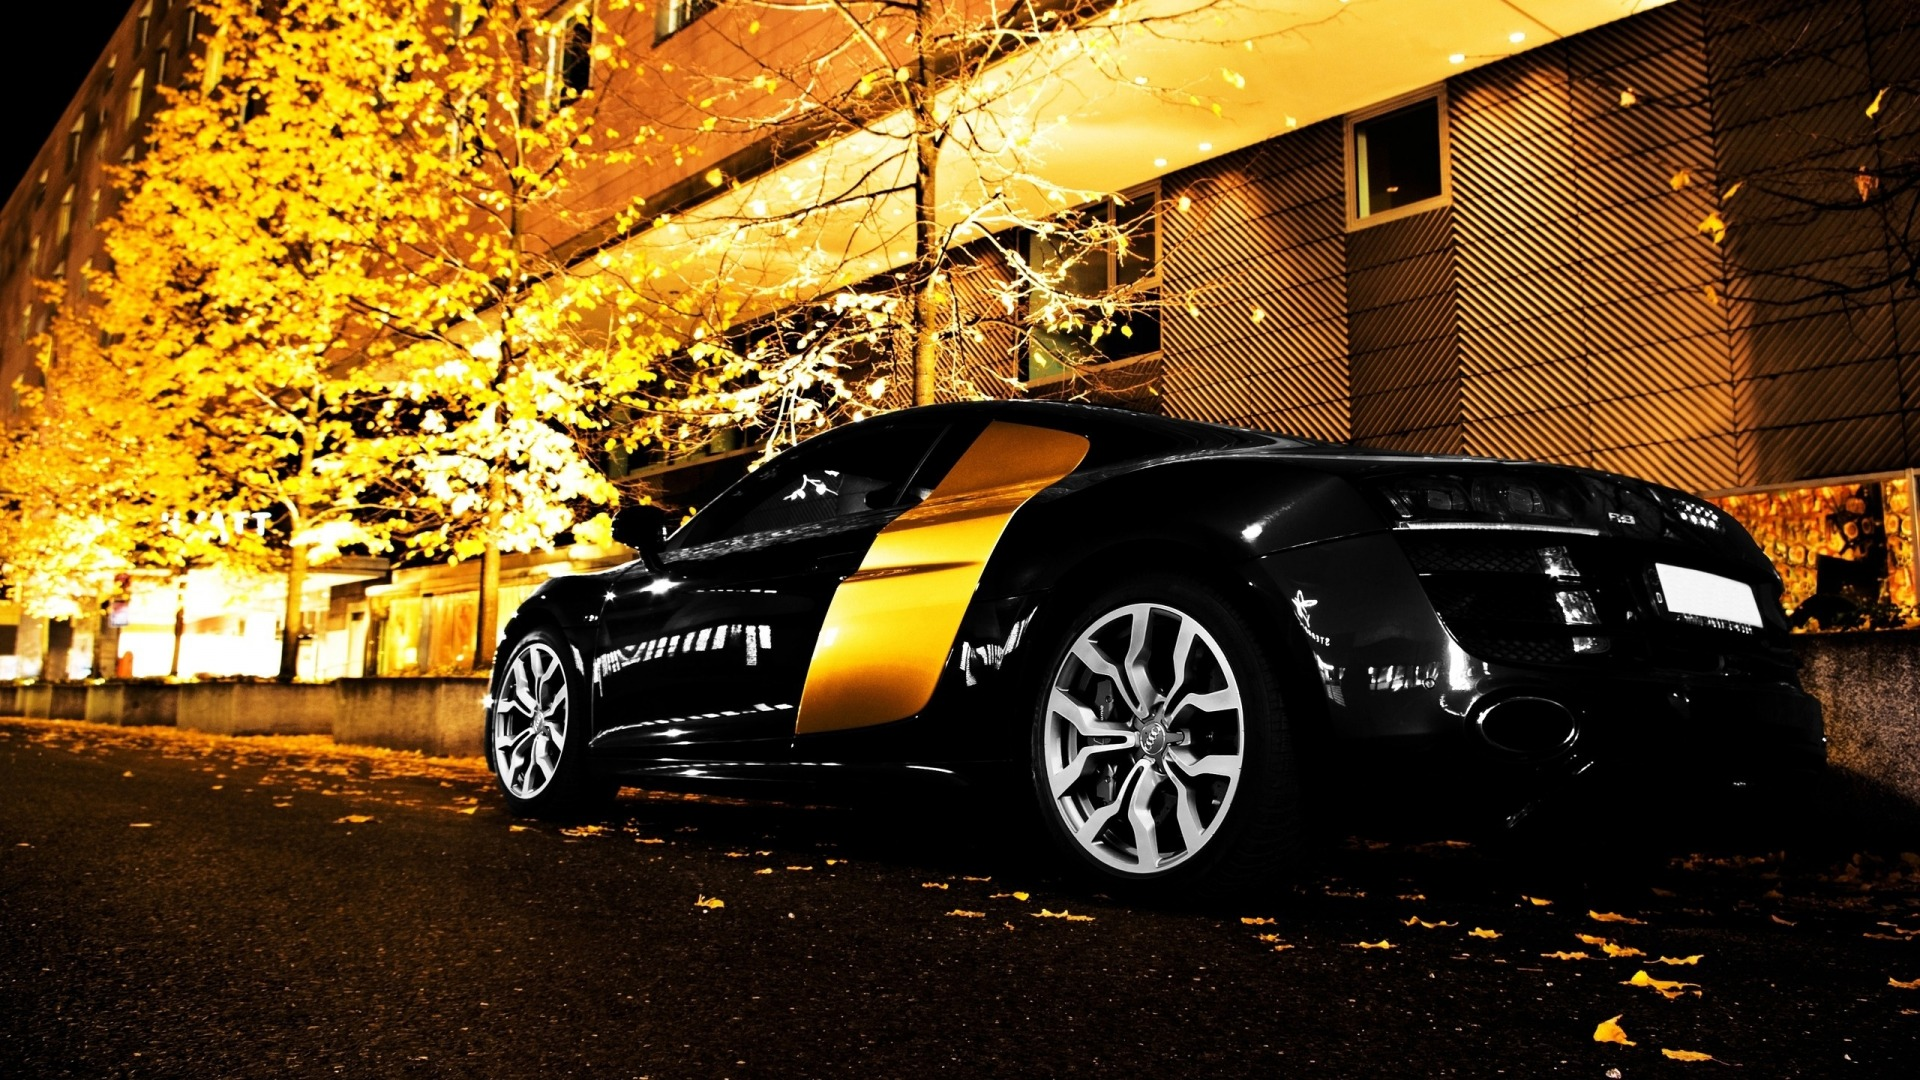 Cool Car Wallpapers For Desktop Pixelstalk Net